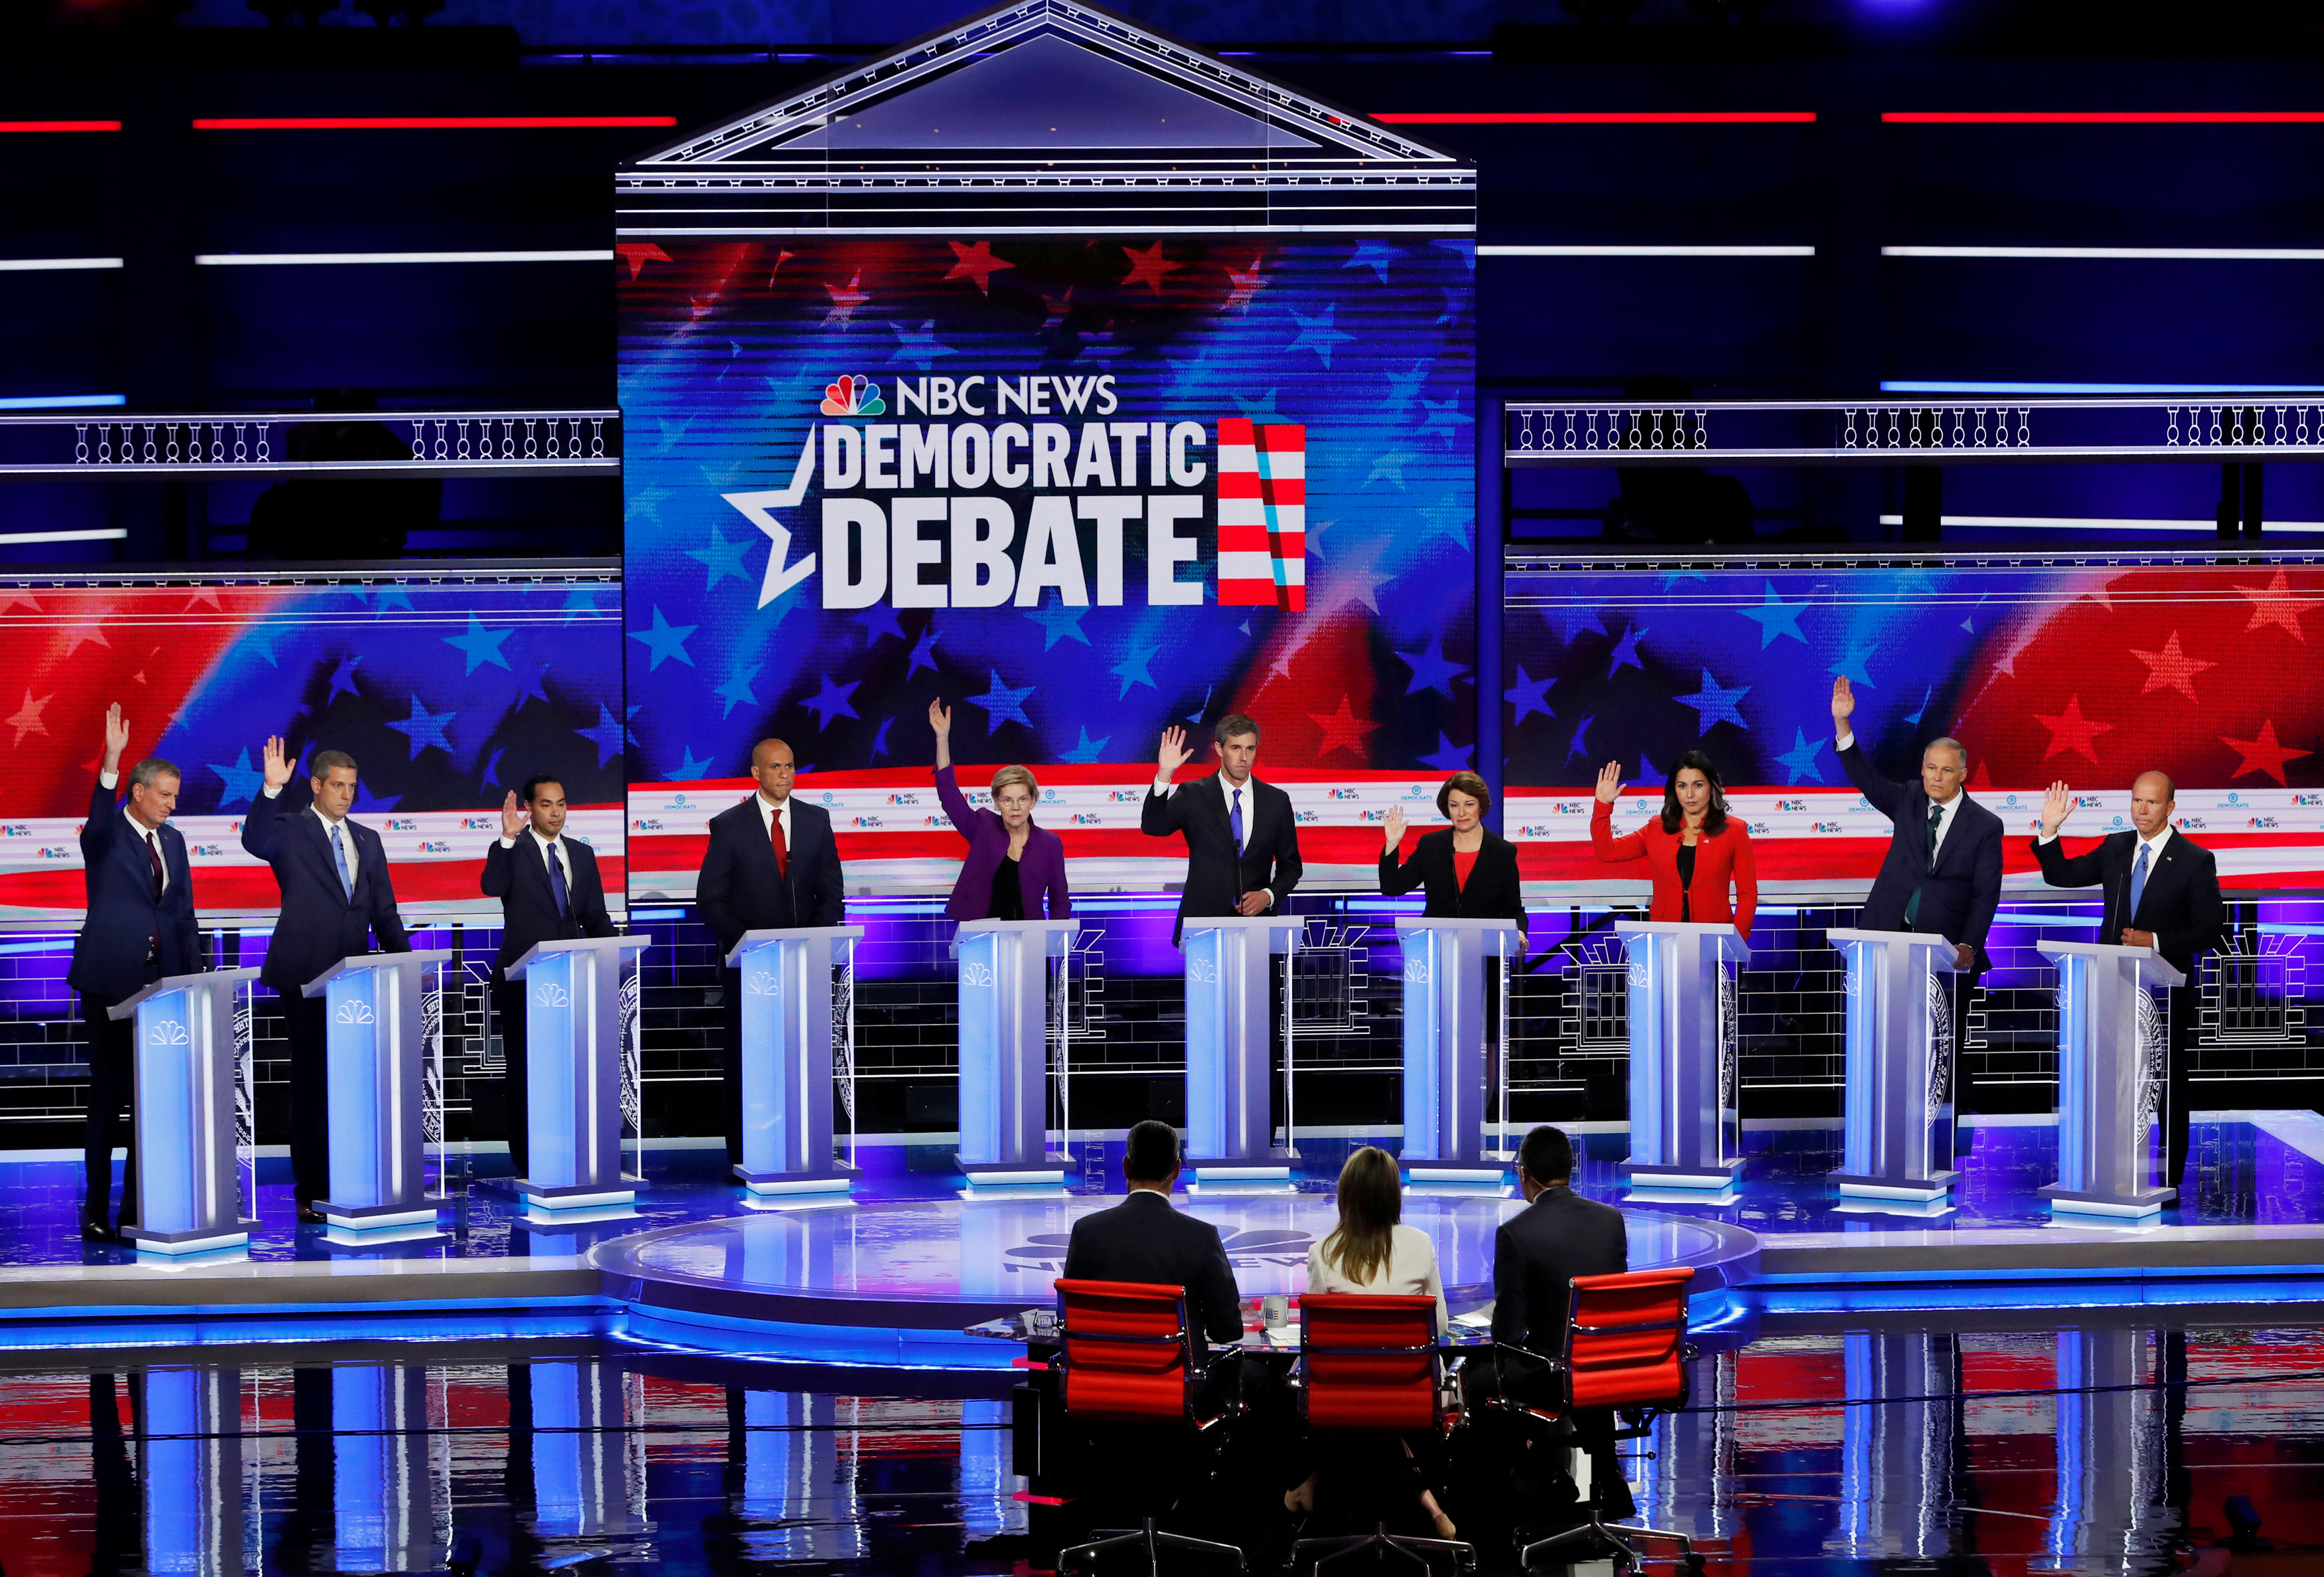 All candidates except U.S. Senator Cory Booker raise their hands while responding to a question that they would currently support the original Iran nuclear agreement during the first U.S. 2020 presidential election Democratic candidates debate in Miami, Florida, U.S., June 26, 2019. REUTERS/Mike Segar